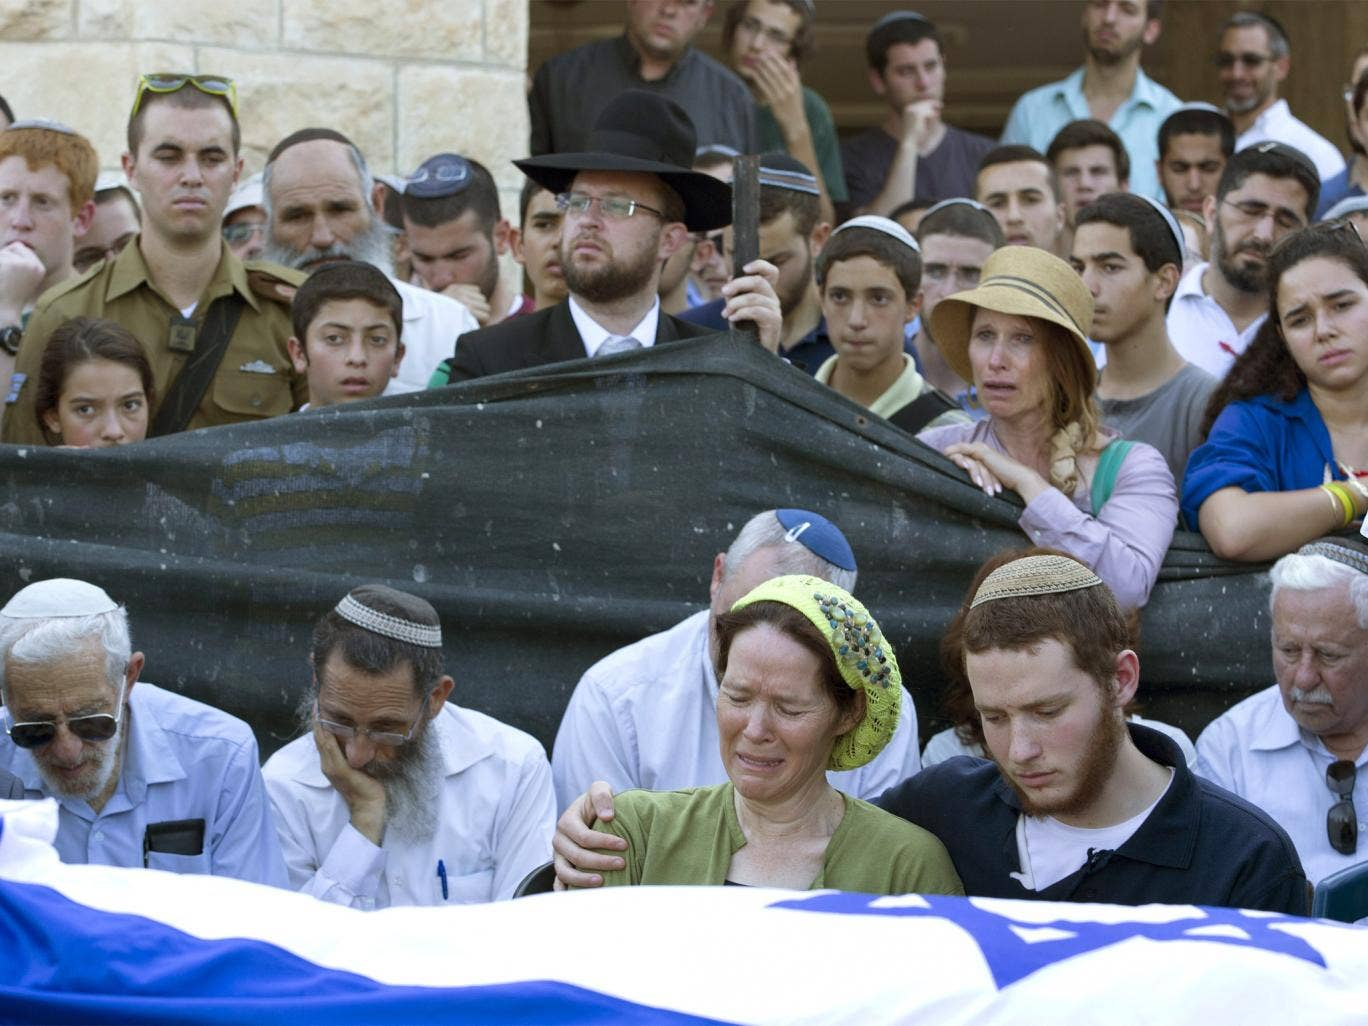 Avi and Rachel Fraenkel attend the funeral of their son, Naftali, a 16-year-old with dual Israeli-American citizenship, in their town of Nof Ayalon